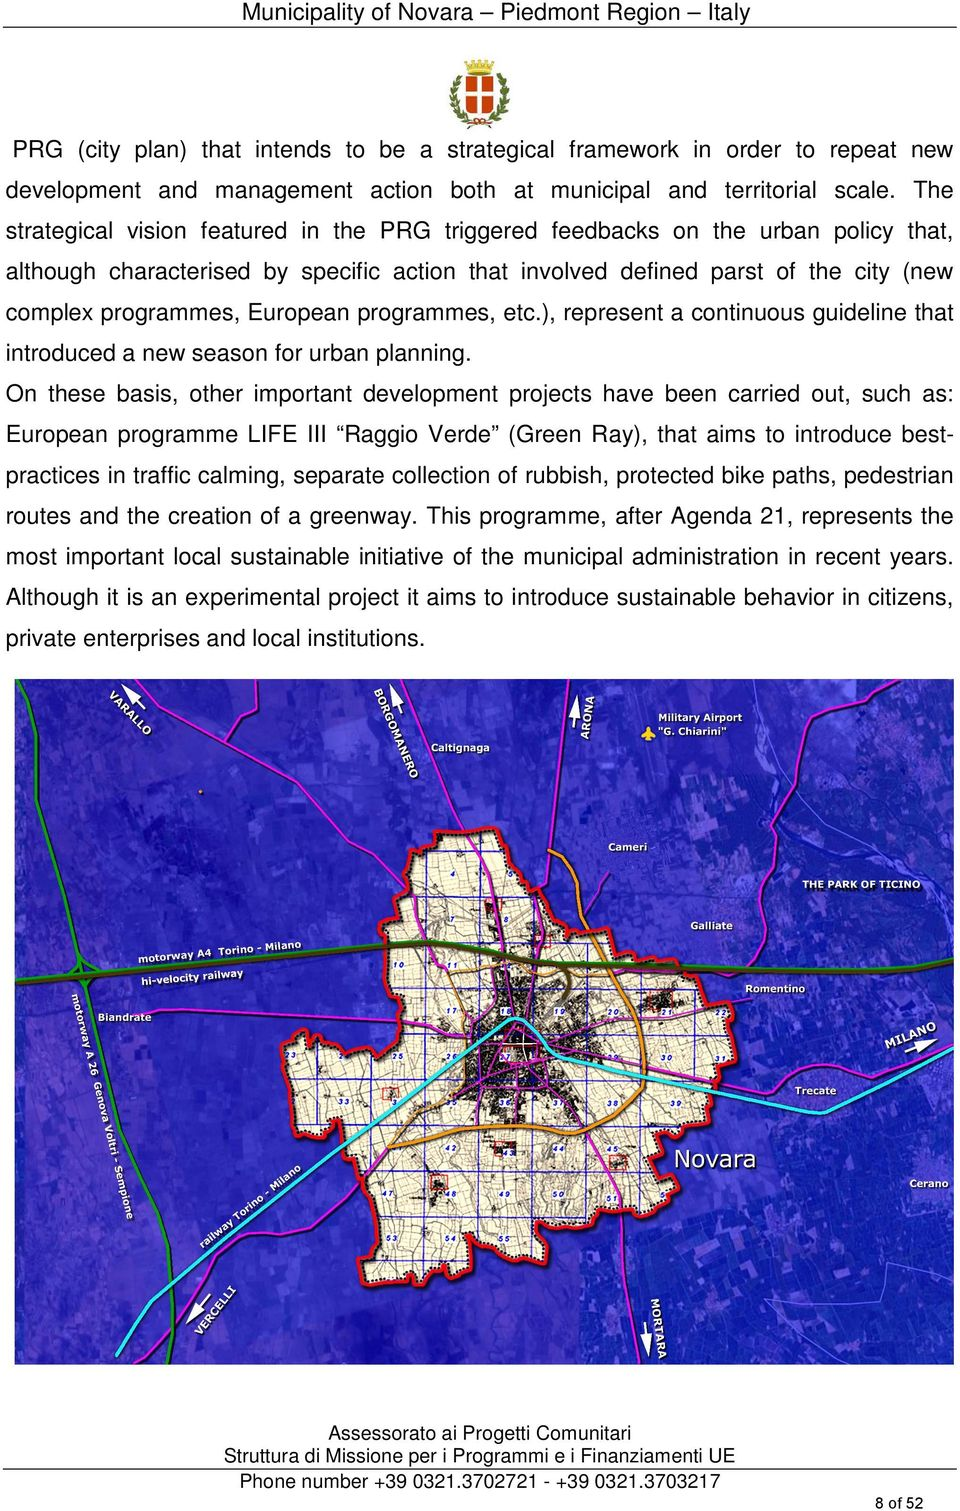 The strategical vision featured in the PRG triggered feedbacks on the urban policy that, although characterised by specific action that involved defined parst of the city (new complex programmes,